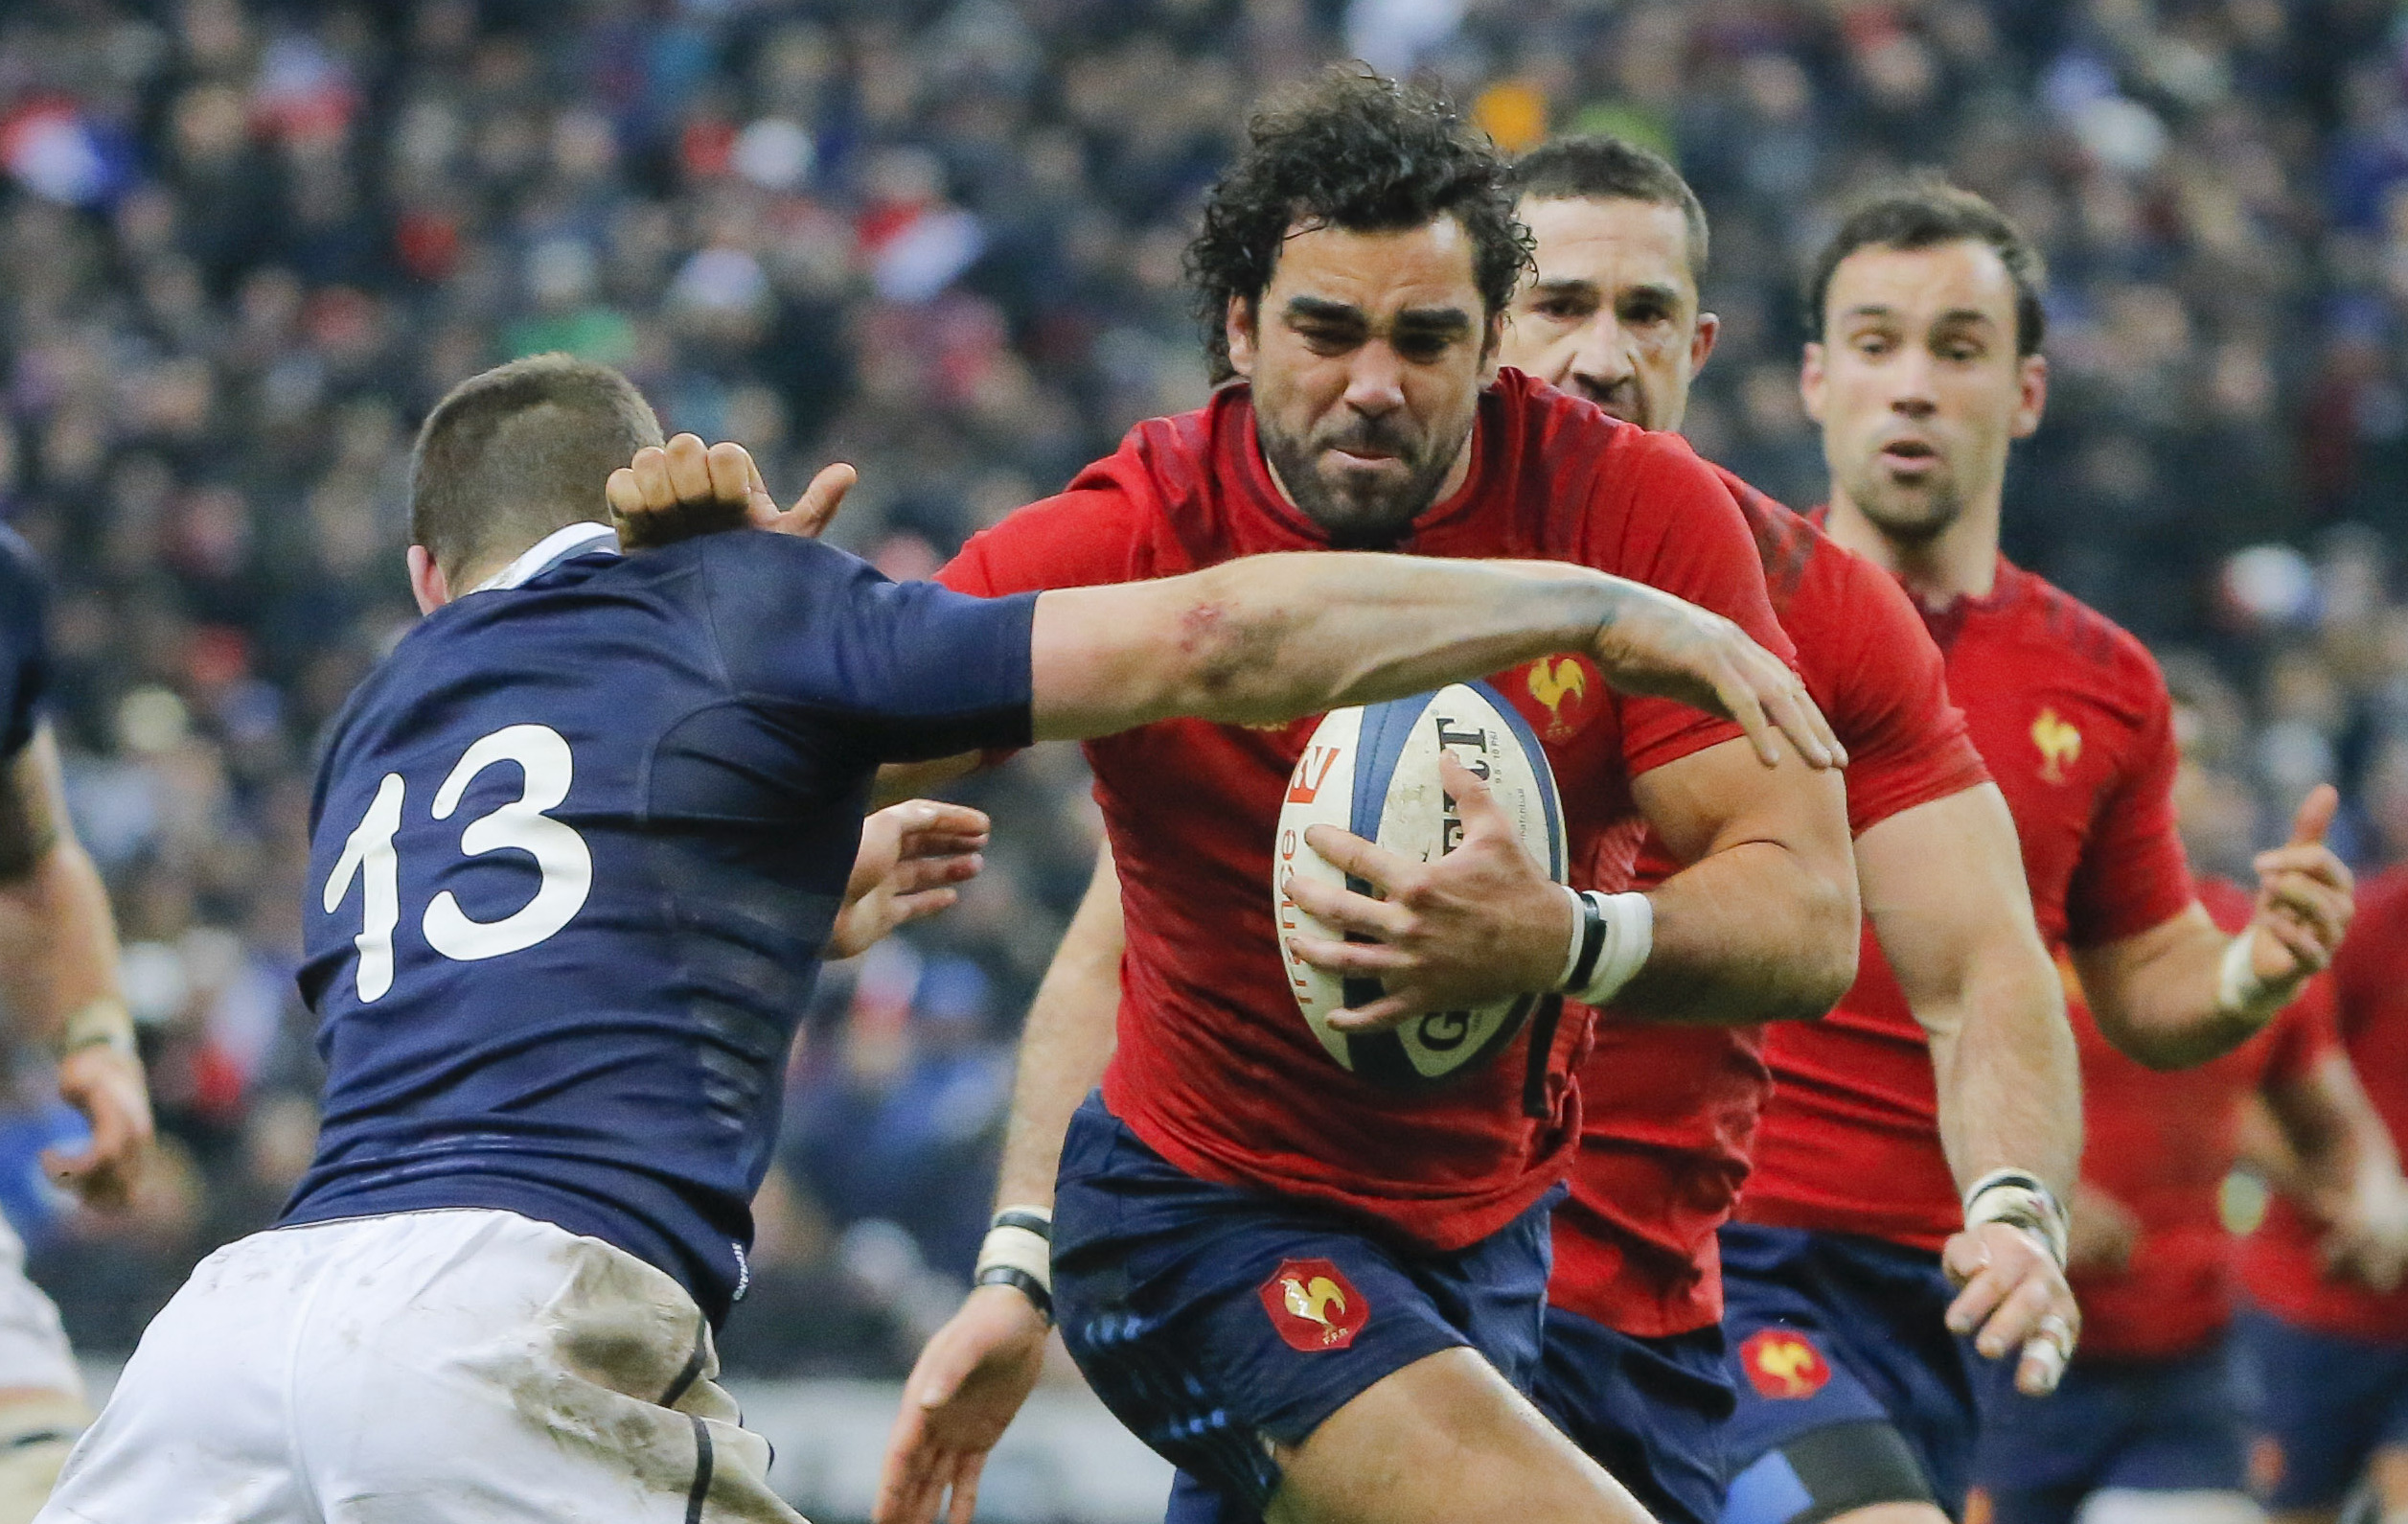 Rugby - XV de France - Huget : «On va monter en puissance»